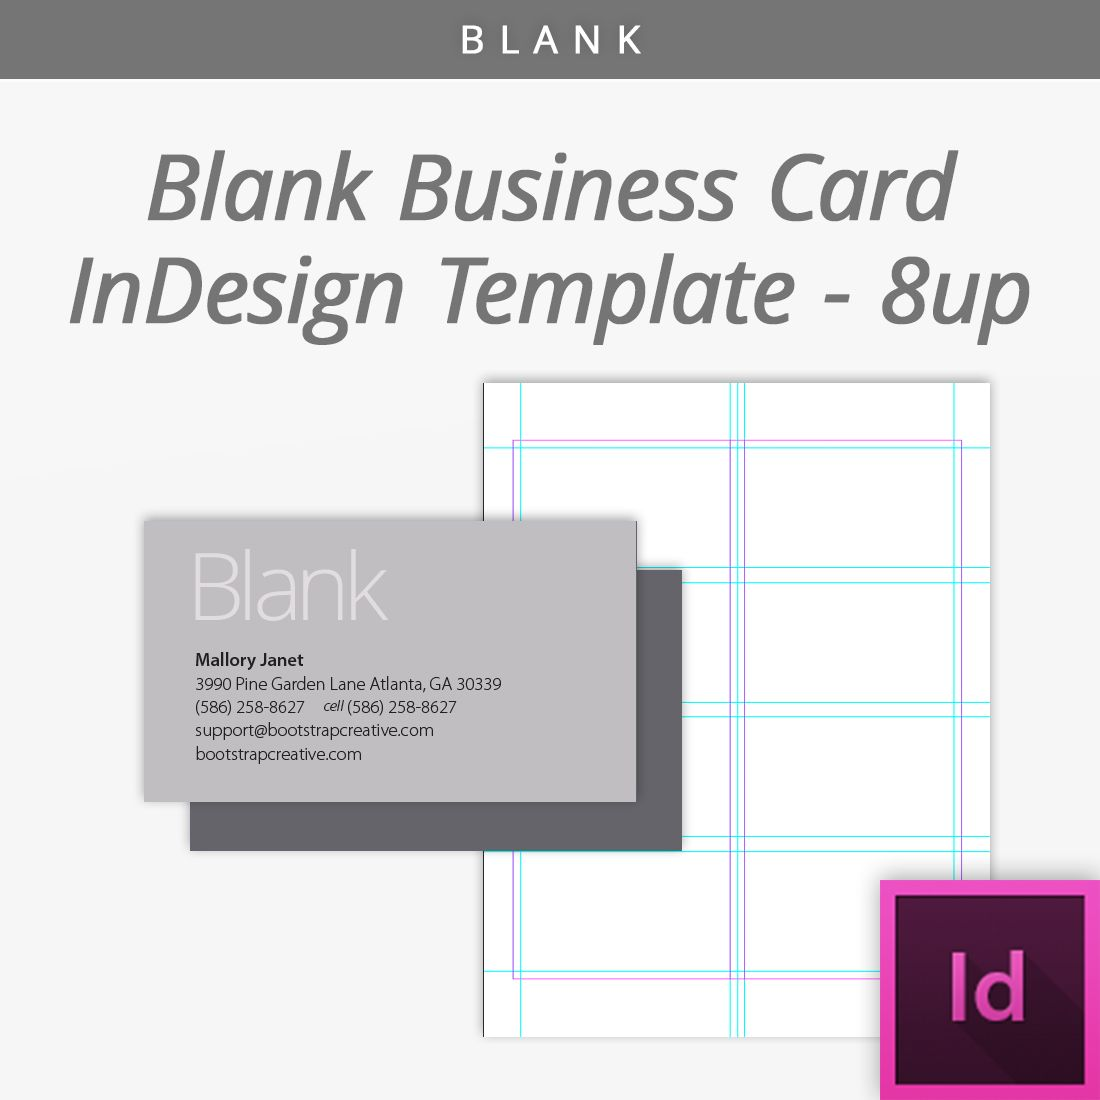 Blank InDesign Business Card Template Up Free Download - Free downloadable business card templates